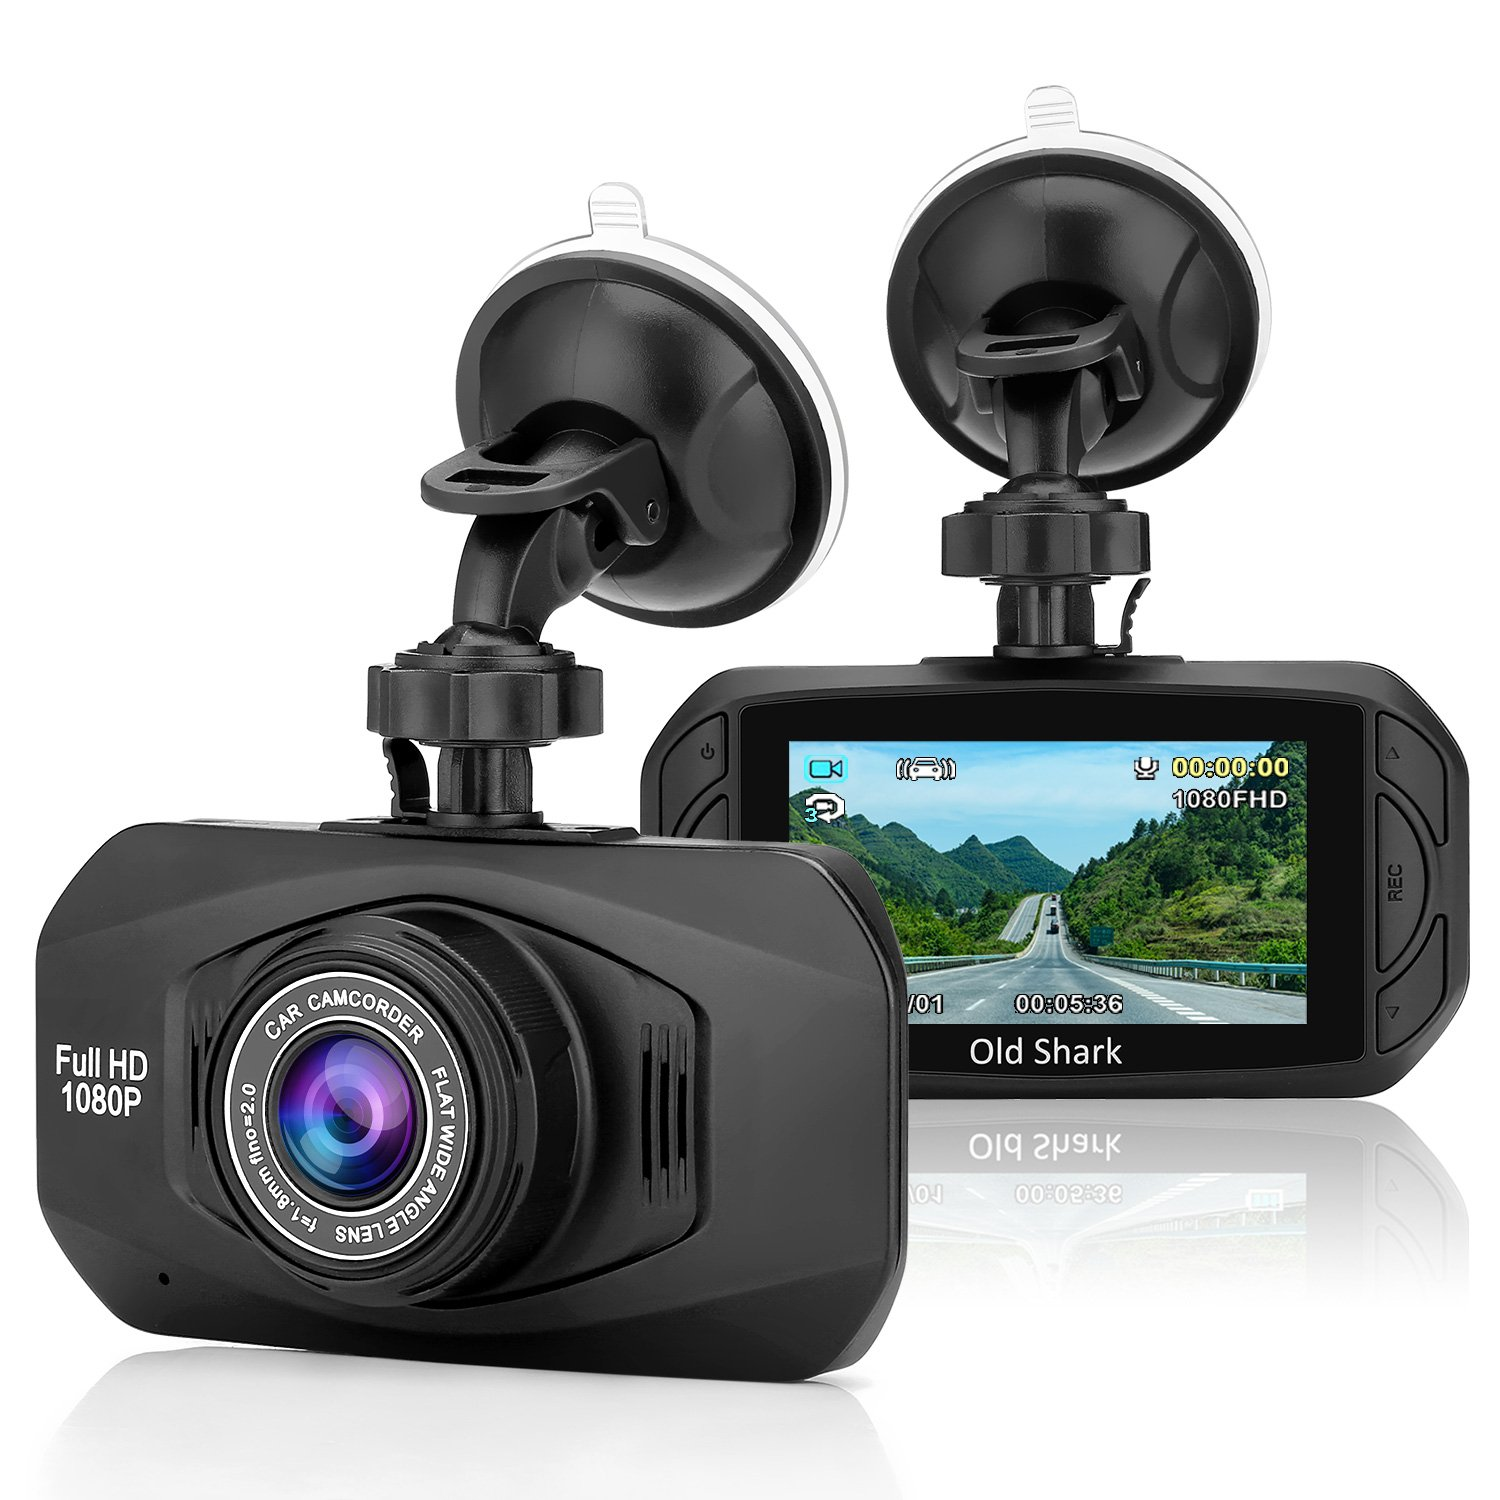 OldShark Dash Cam 1080P HD Car Video Driving Recorder Dashboard Camera with Night Vision,4-Lane Wide-Angle View Lens, G-Sensor, Loop Recording, Motion Detection, Parking Guard S29G-D82G-E8GA